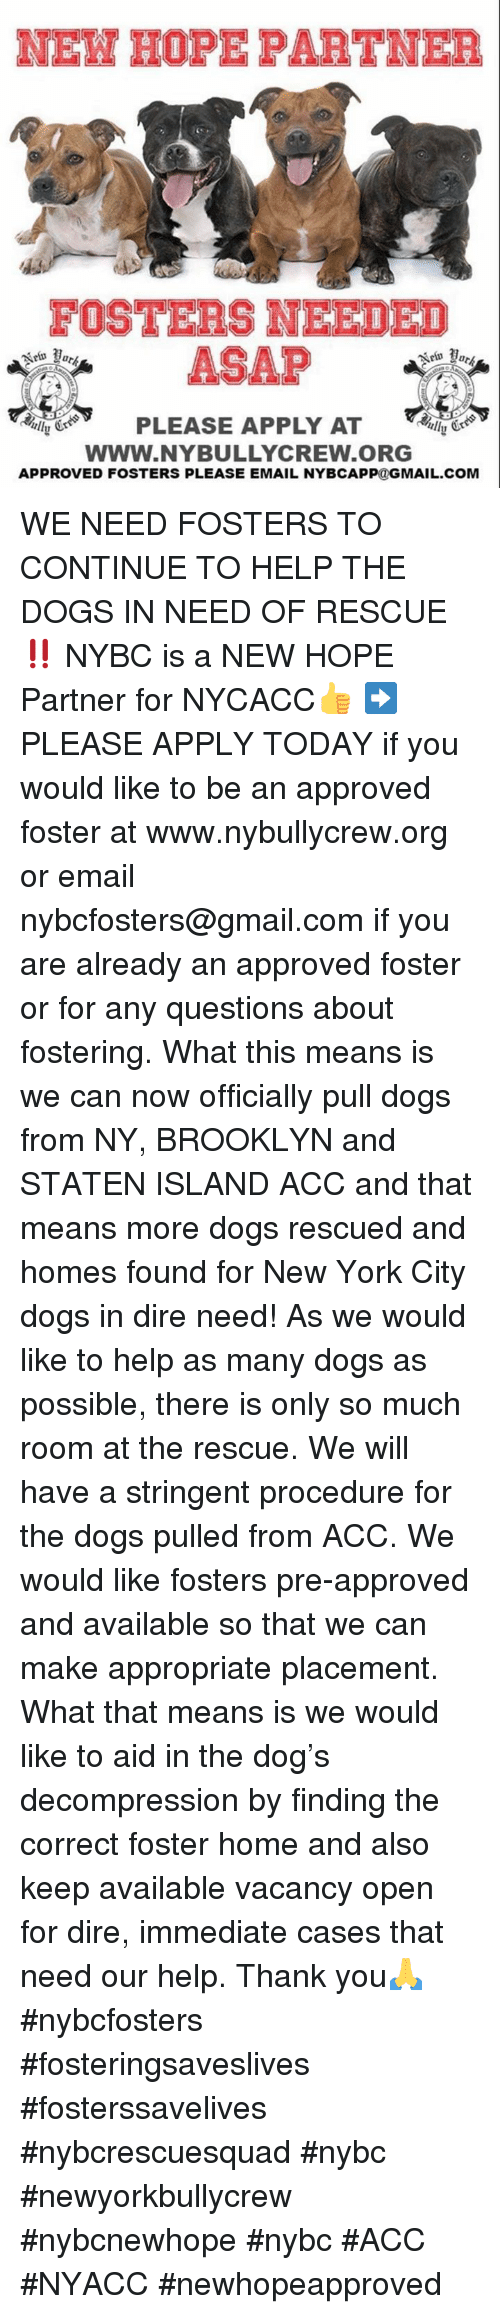 Dogs, Memes, and New York: FOSTERS NEEDED  ASAP  PLEASE APPLY AT  Www.NYBULLYCREW.ORG  APPROVED FOSTERS PLEASE EMAIL NYBCAPP@GMAIL.COM WE NEED FOSTERS TO CONTINUE TO HELP THE DOGS IN NEED OF RESCUE‼️ NYBC is a NEW HOPE Partner for NYCACC👍 ➡️ PLEASE APPLY TODAY if you would like to be an approved foster at www.nybullycrew.org or email nybcfosters@gmail.com if you are already an approved foster or for any questions about fostering.   What this means is we can now officially pull dogs from NY, BROOKLYN and STATEN ISLAND ACC and that means more dogs rescued and homes found for New York City dogs in dire need!  As we would like to help as many dogs as possible, there is only  so much room at the rescue. We will have a stringent procedure for the dogs pulled from ACC. We would like fosters pre-approved and available so that we can make appropriate placement. What that means is we would like to aid in the dog's decompression by finding the correct foster home and also keep available vacancy open for dire, immediate cases that need our help. Thank you🙏  #nybcfosters #fosteringsaveslives #fosterssavelives #nybcrescuesquad #nybc #newyorkbullycrew #nybcnewhope #nybc #ACC #NYACC #newhopeapproved